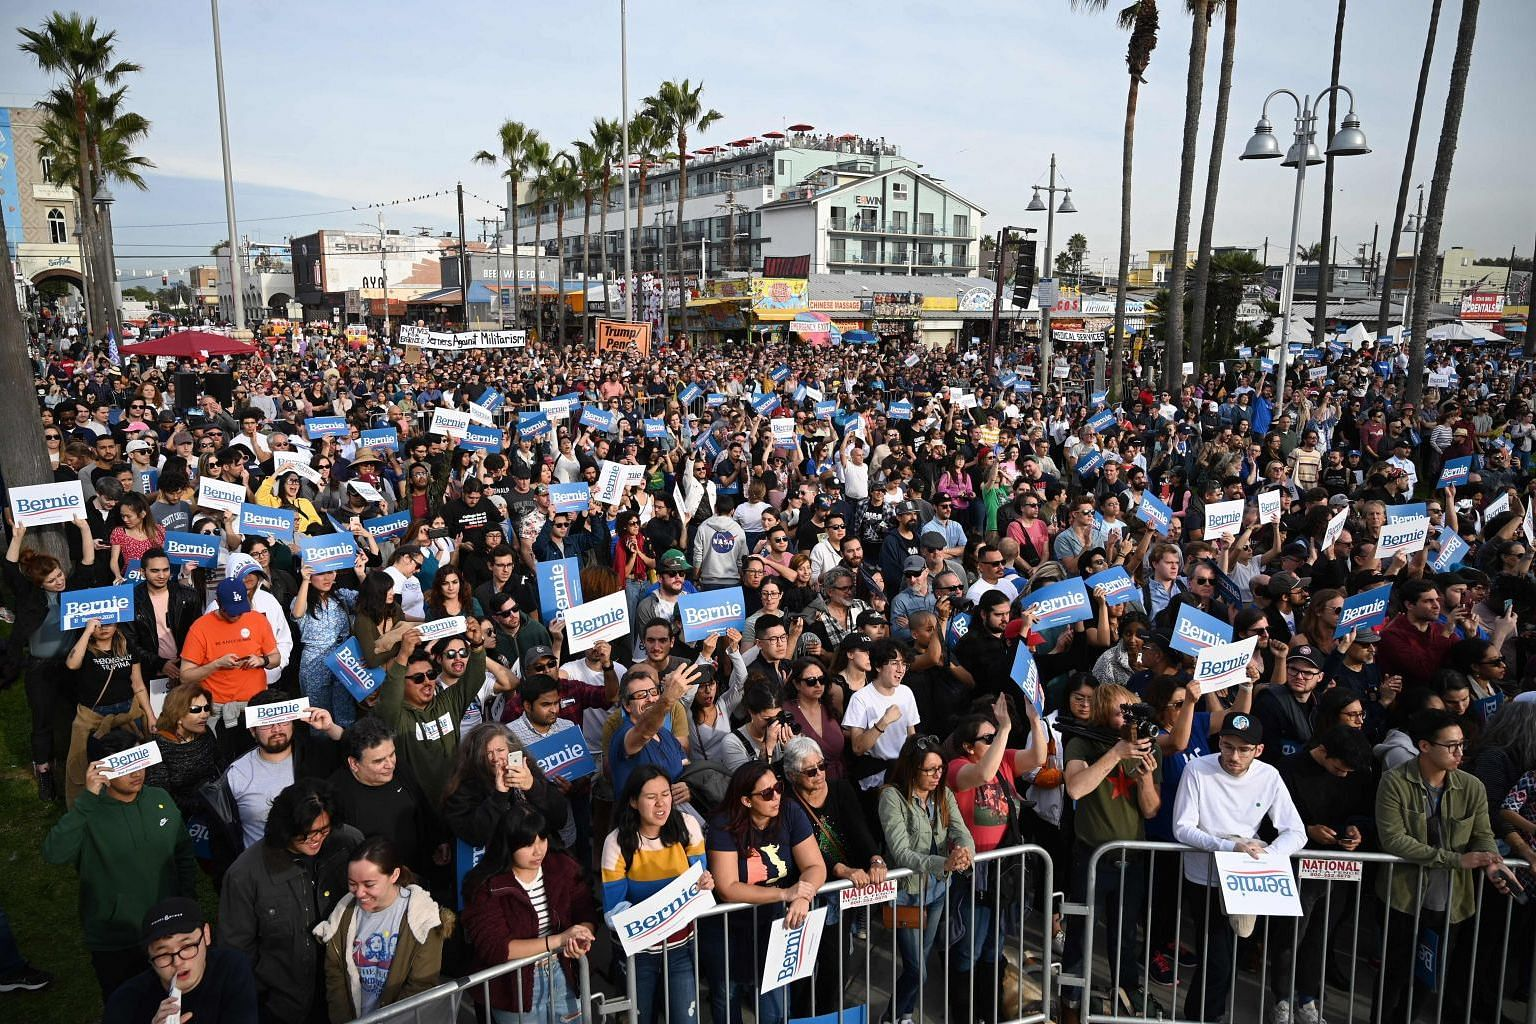 A US Democratic rally in the Venice Beach neighbourhood of Los Angeles, California, on Dec 21. The presidential election could be tight, which will inevitably bring some focus on economic policies of the various candidates.